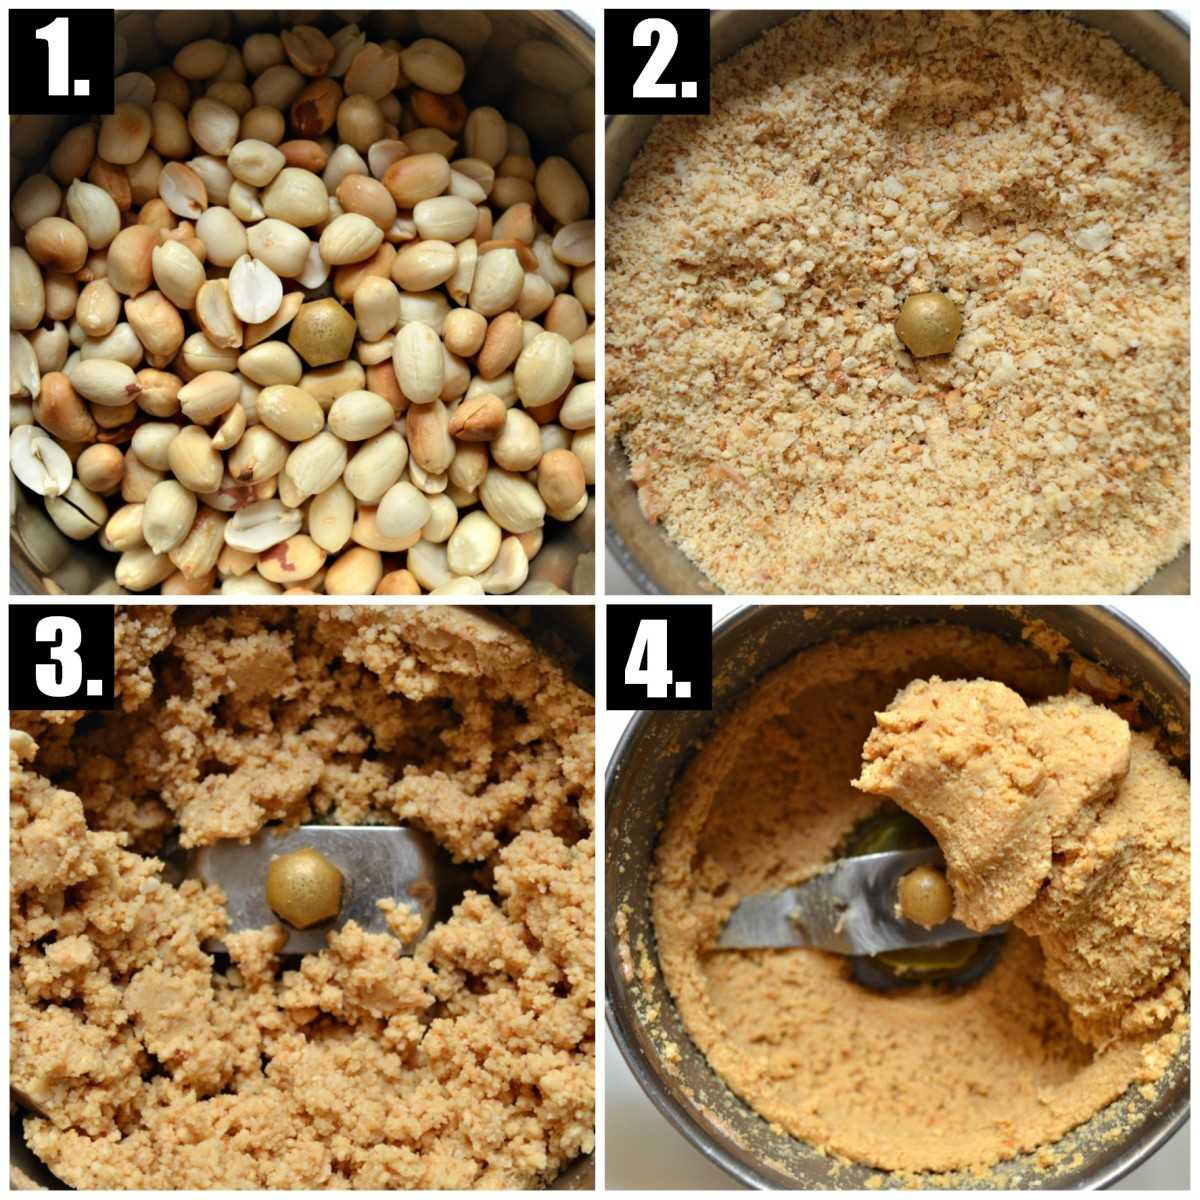 Steps to blending peanut butter. Grinding up the peanut butter is quite a process but takes no more than a few minutes!